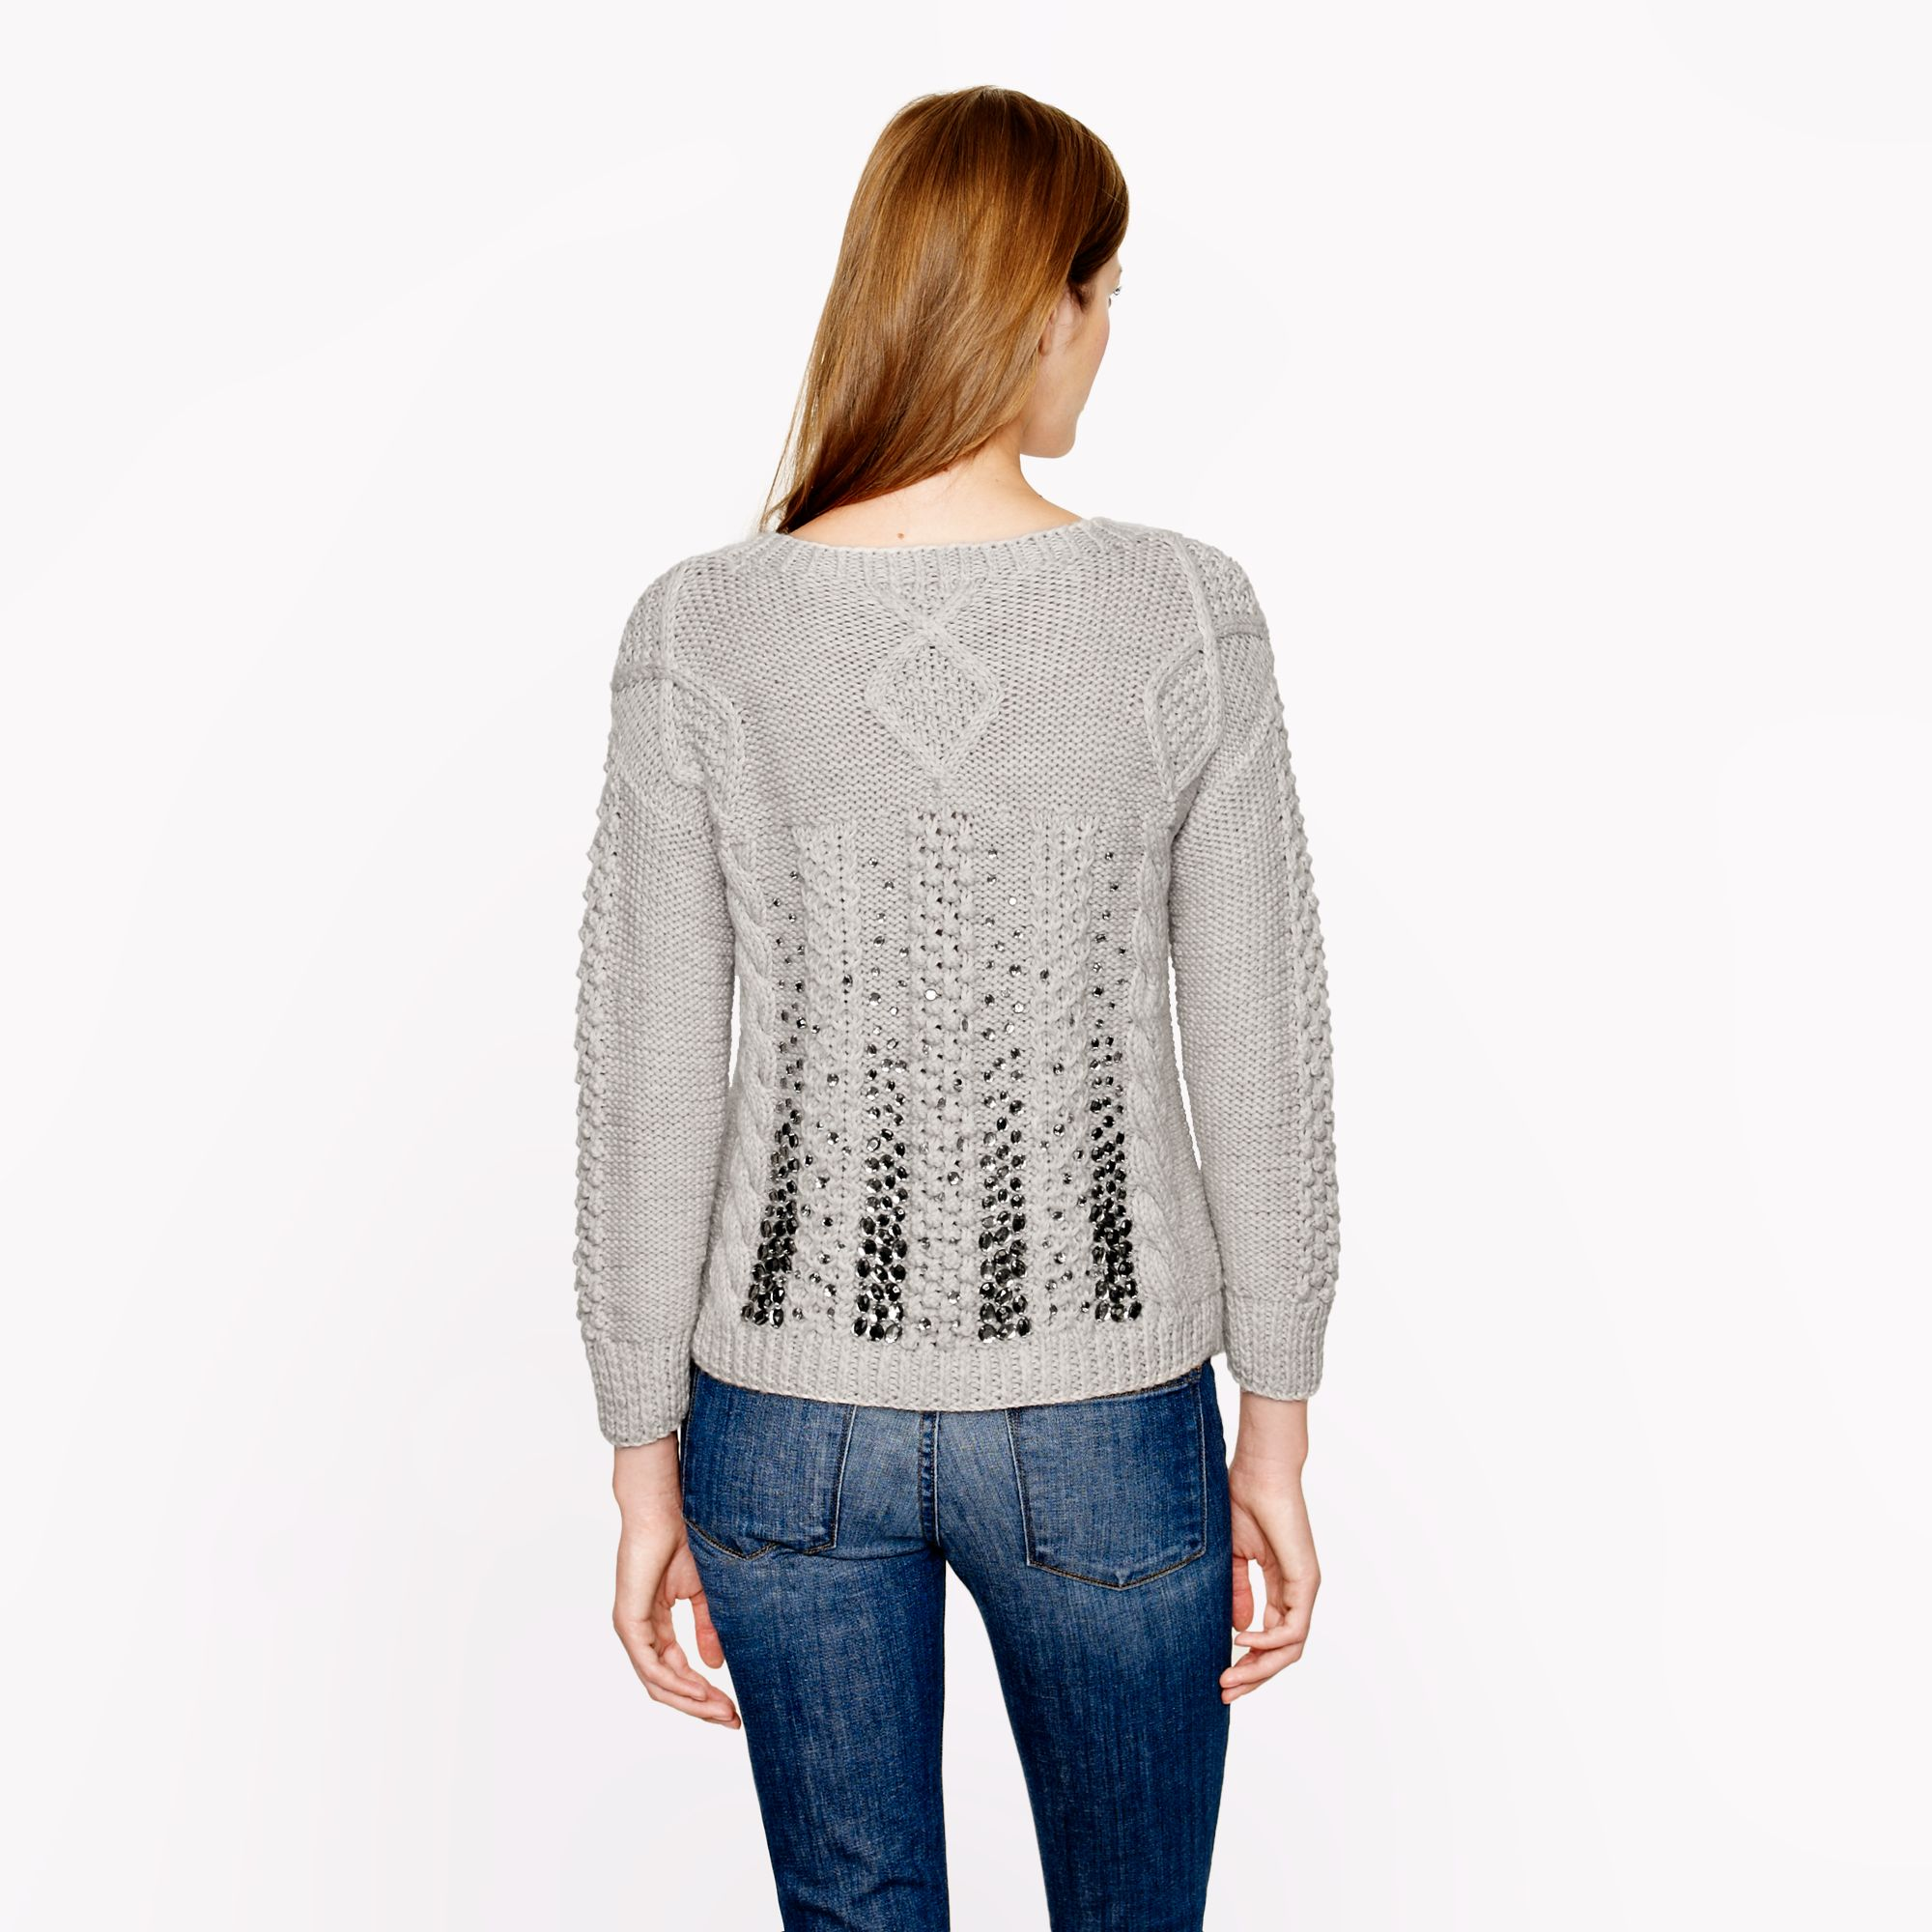 J.crew Collection Handknit Jeweled Cable Sweater in Gray | Lyst